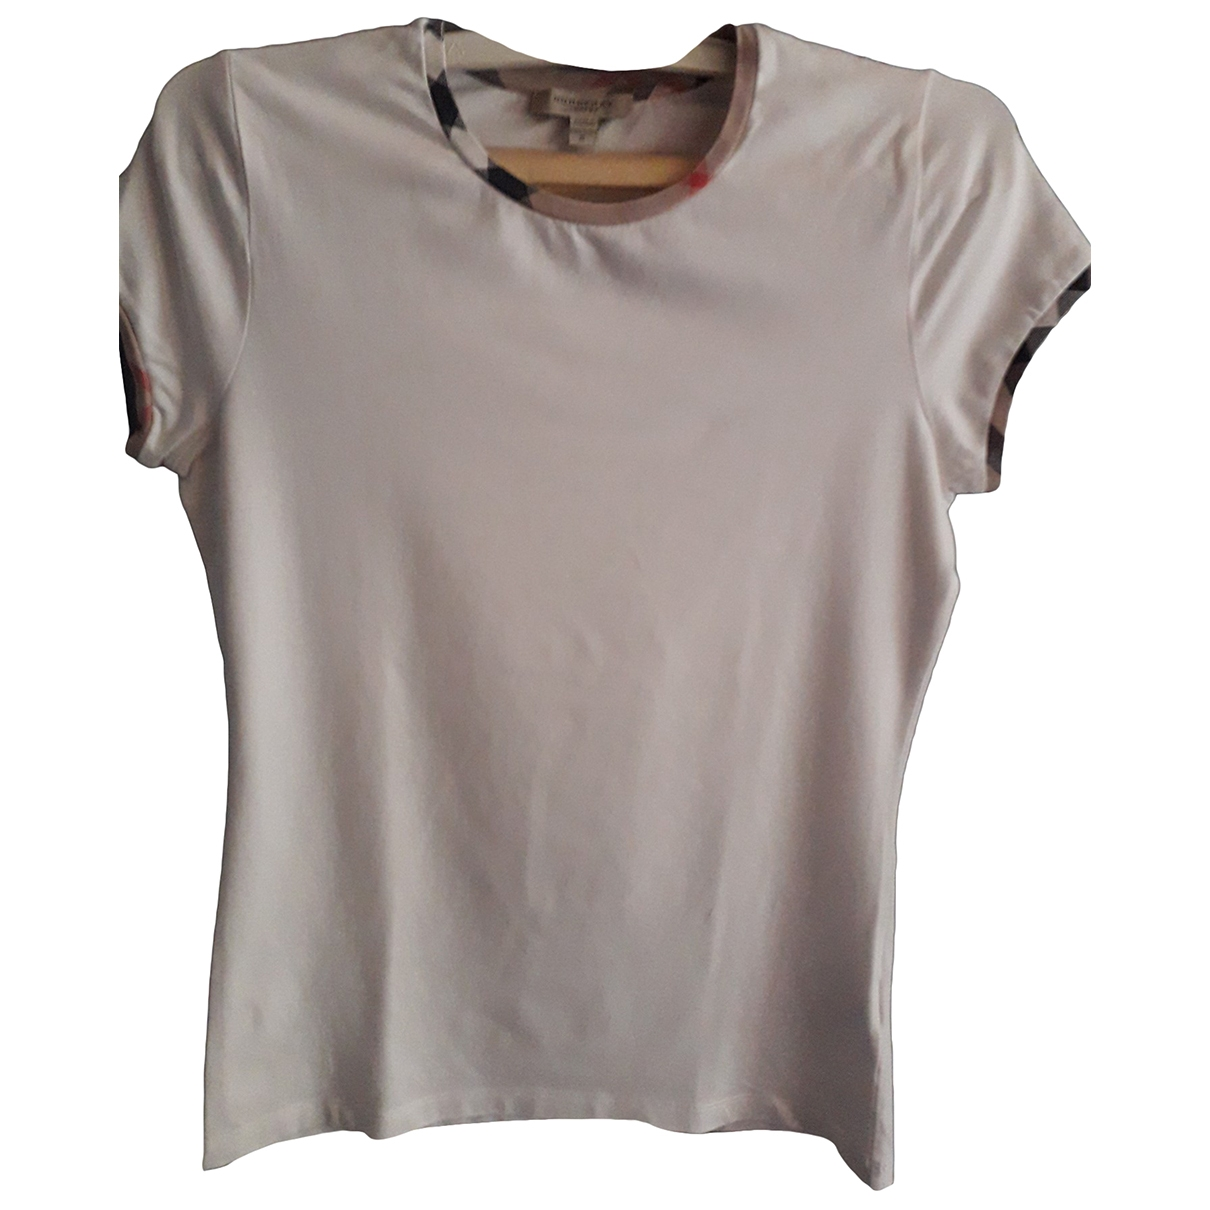 Burberry \N White Cotton  top for Women S International